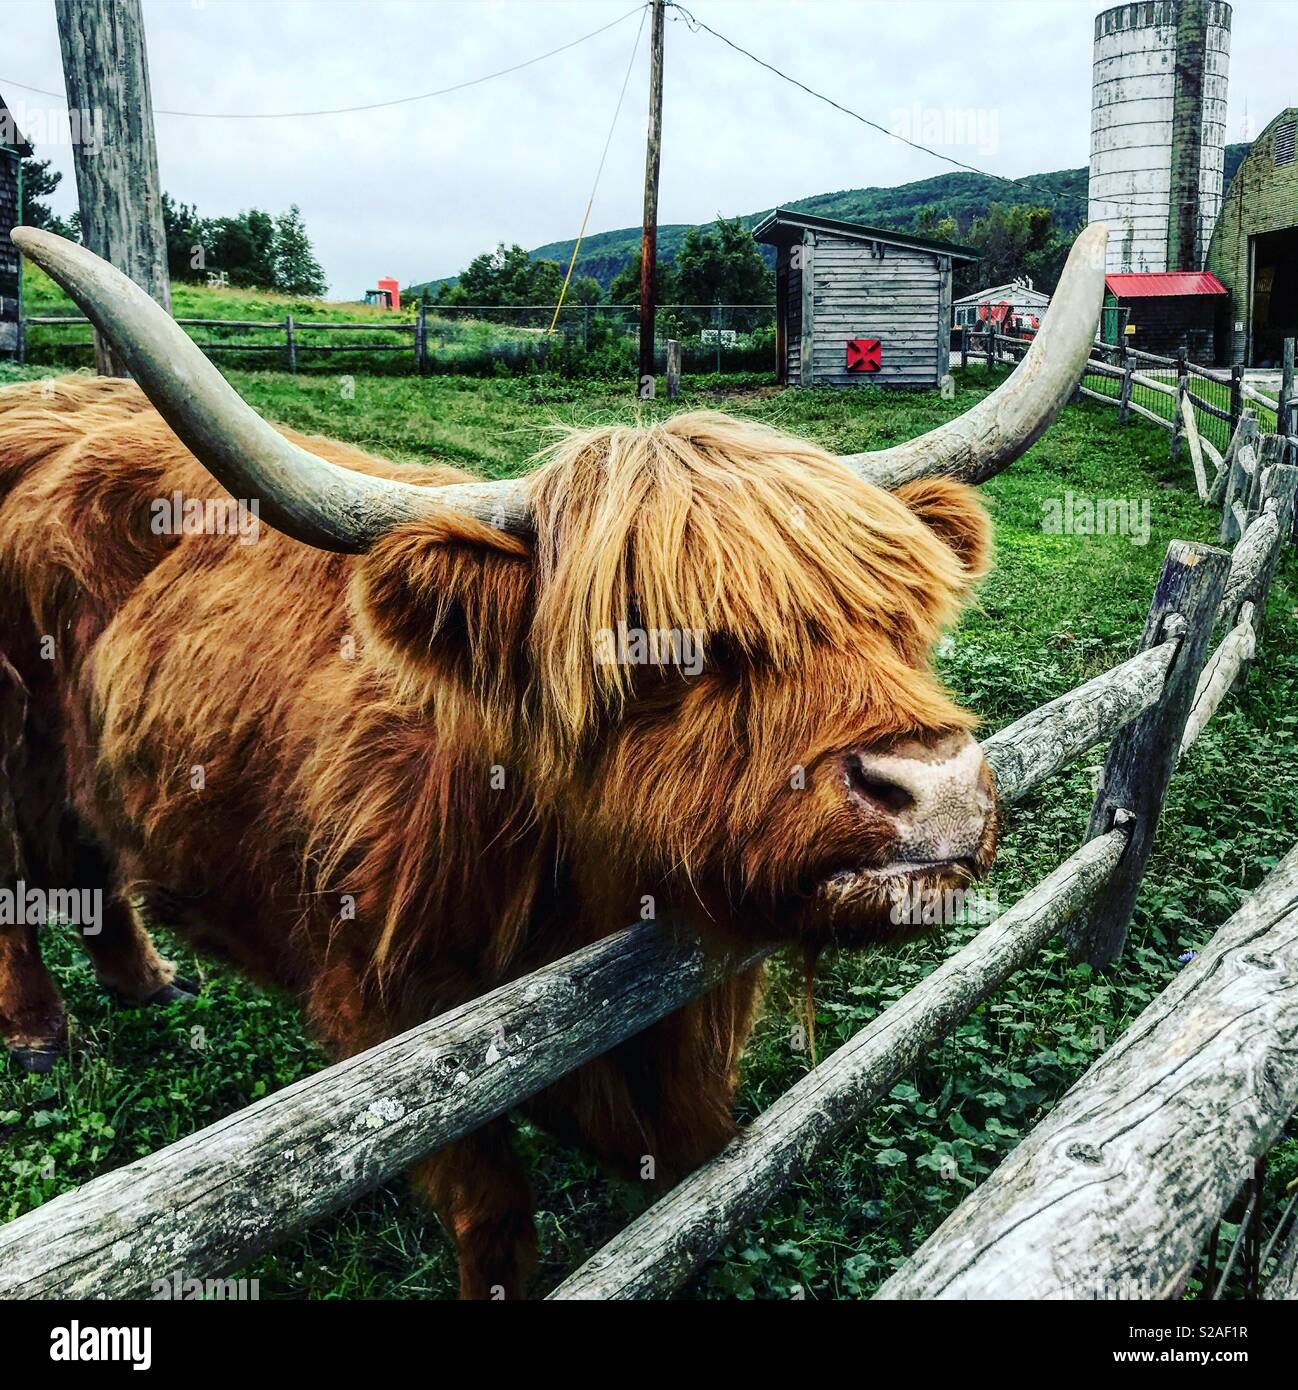 Highland Cattle in a petting zoo at Indian Ladder Farms in Upstate New York - Stock Image